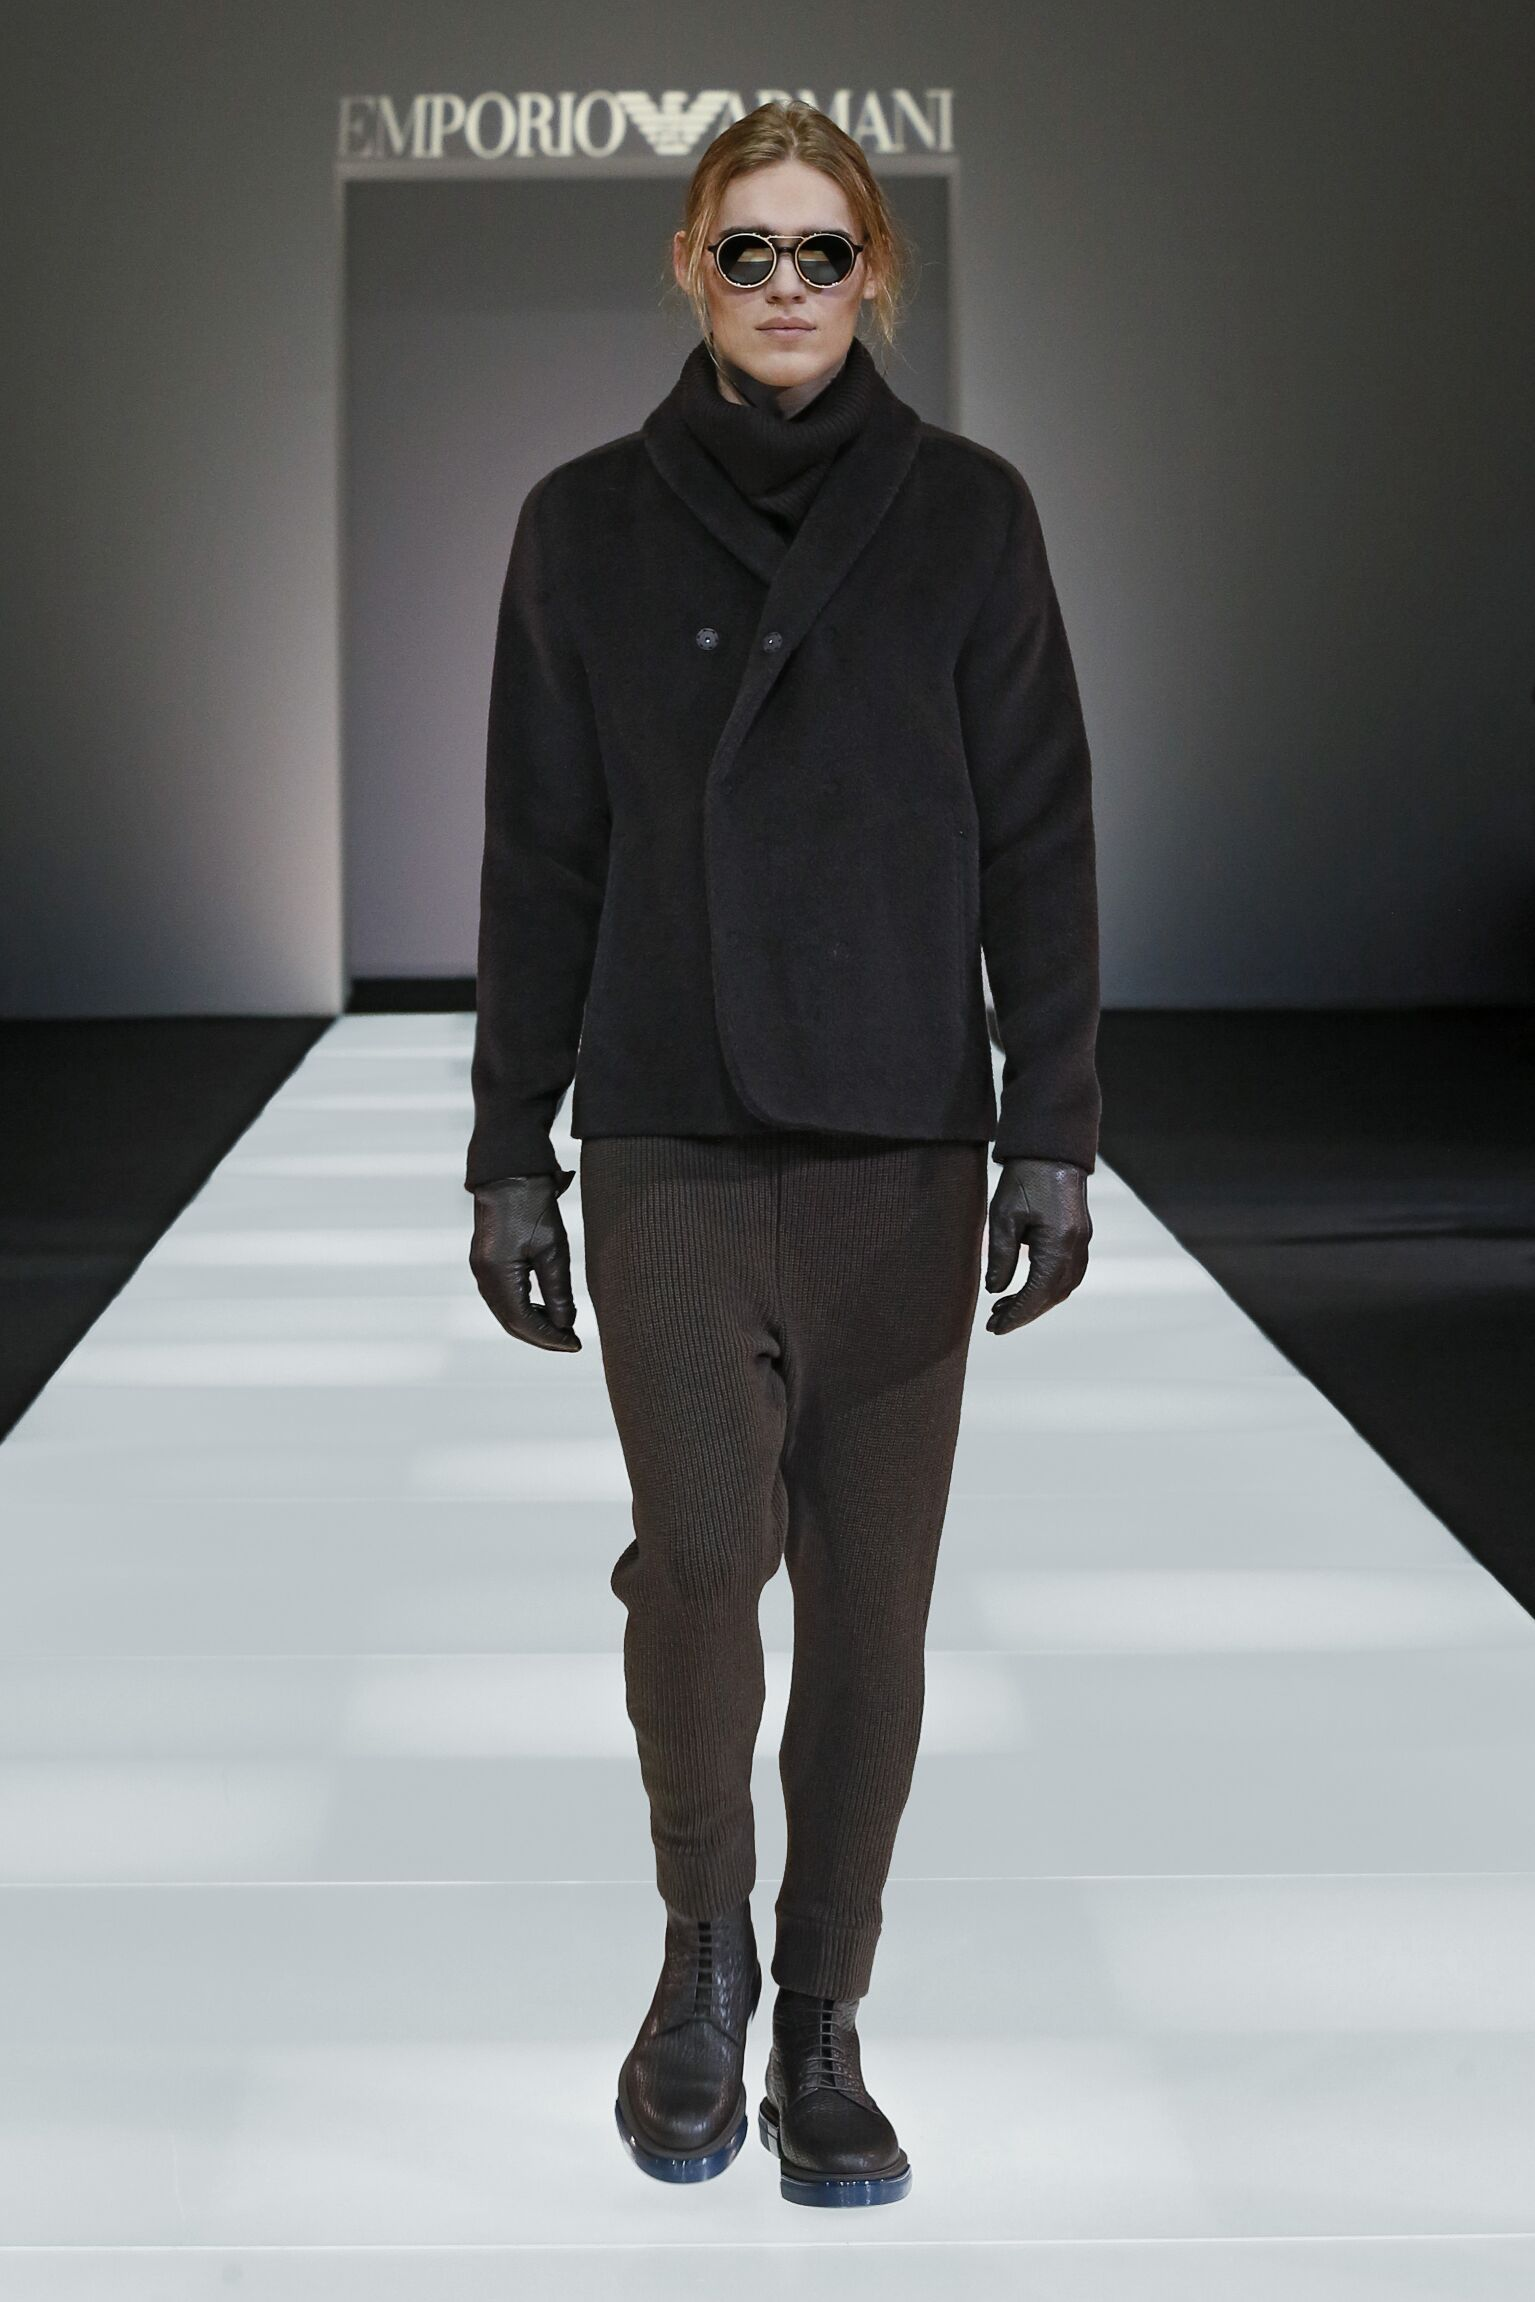 Fashion Man Model Emporio Armani Collection Catwalk